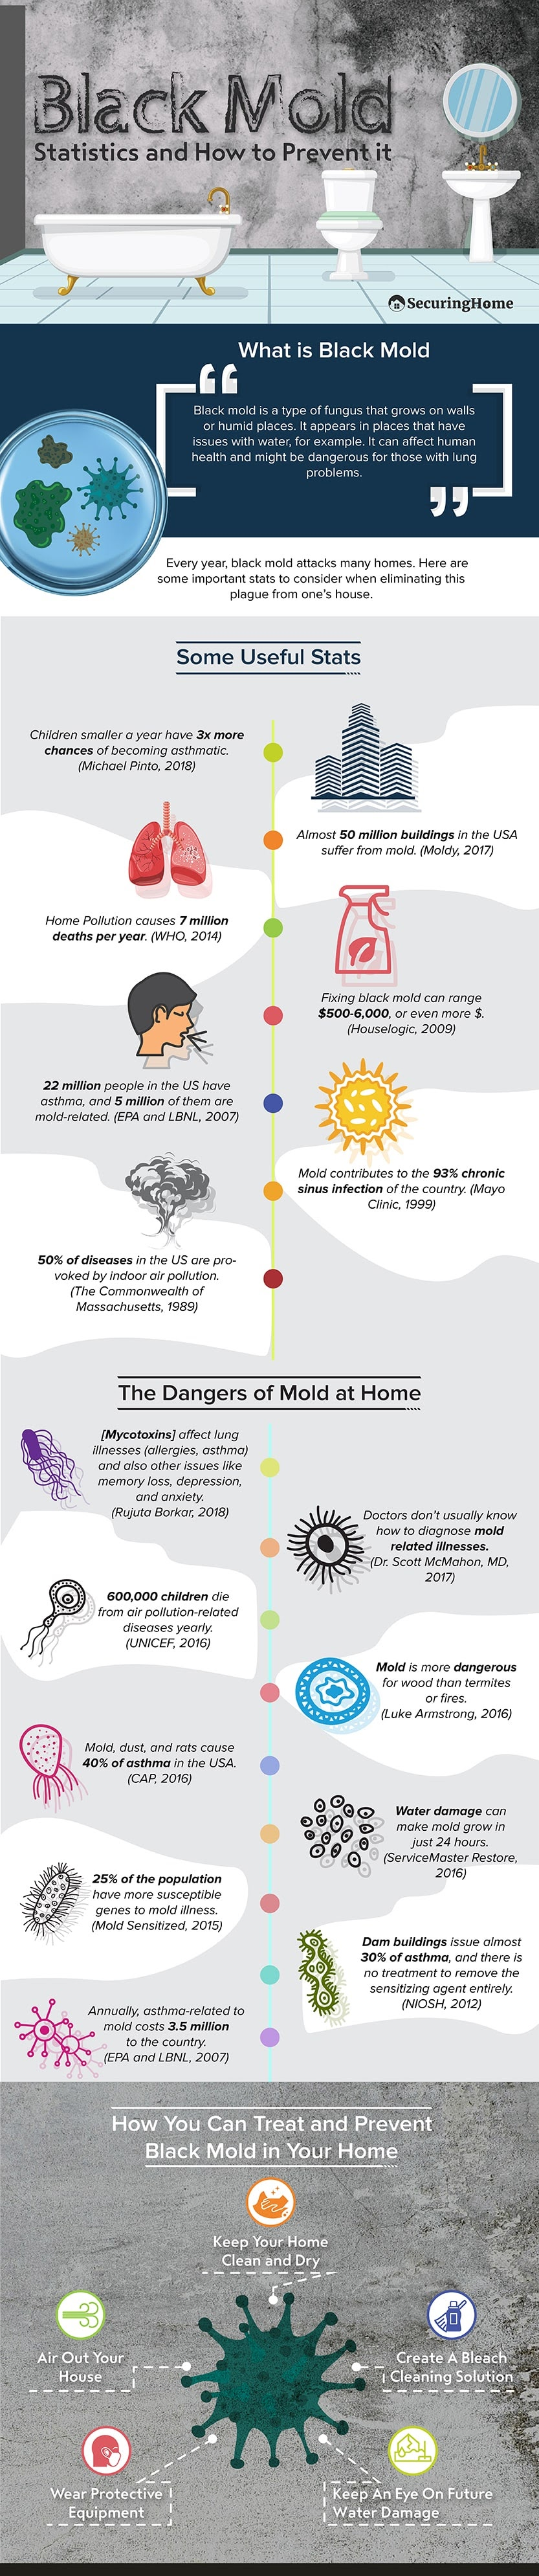 Black Mold Statistics & How to Prevent It #infographic